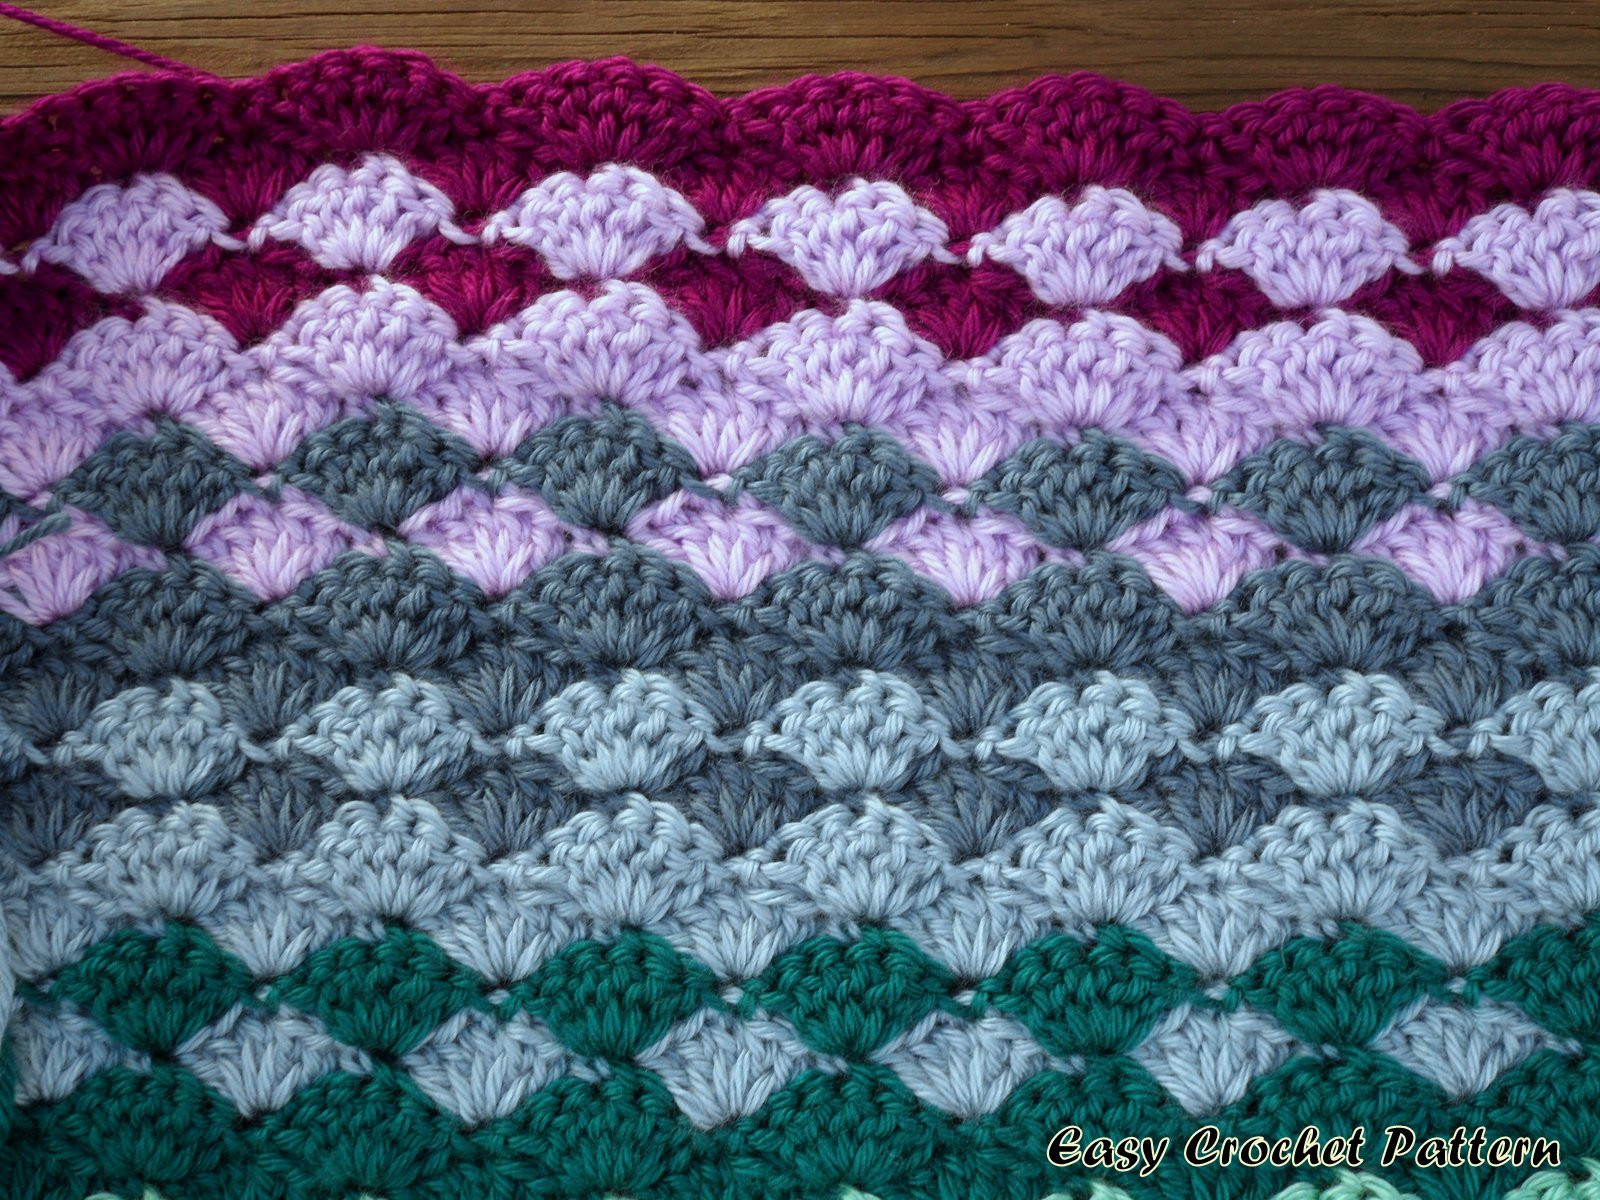 Simple Crochet Afghan Patterns Beautiful Easy Crochet Pattern Shell Afghan A New Project Started Of Innovative 49 Pics Simple Crochet Afghan Patterns